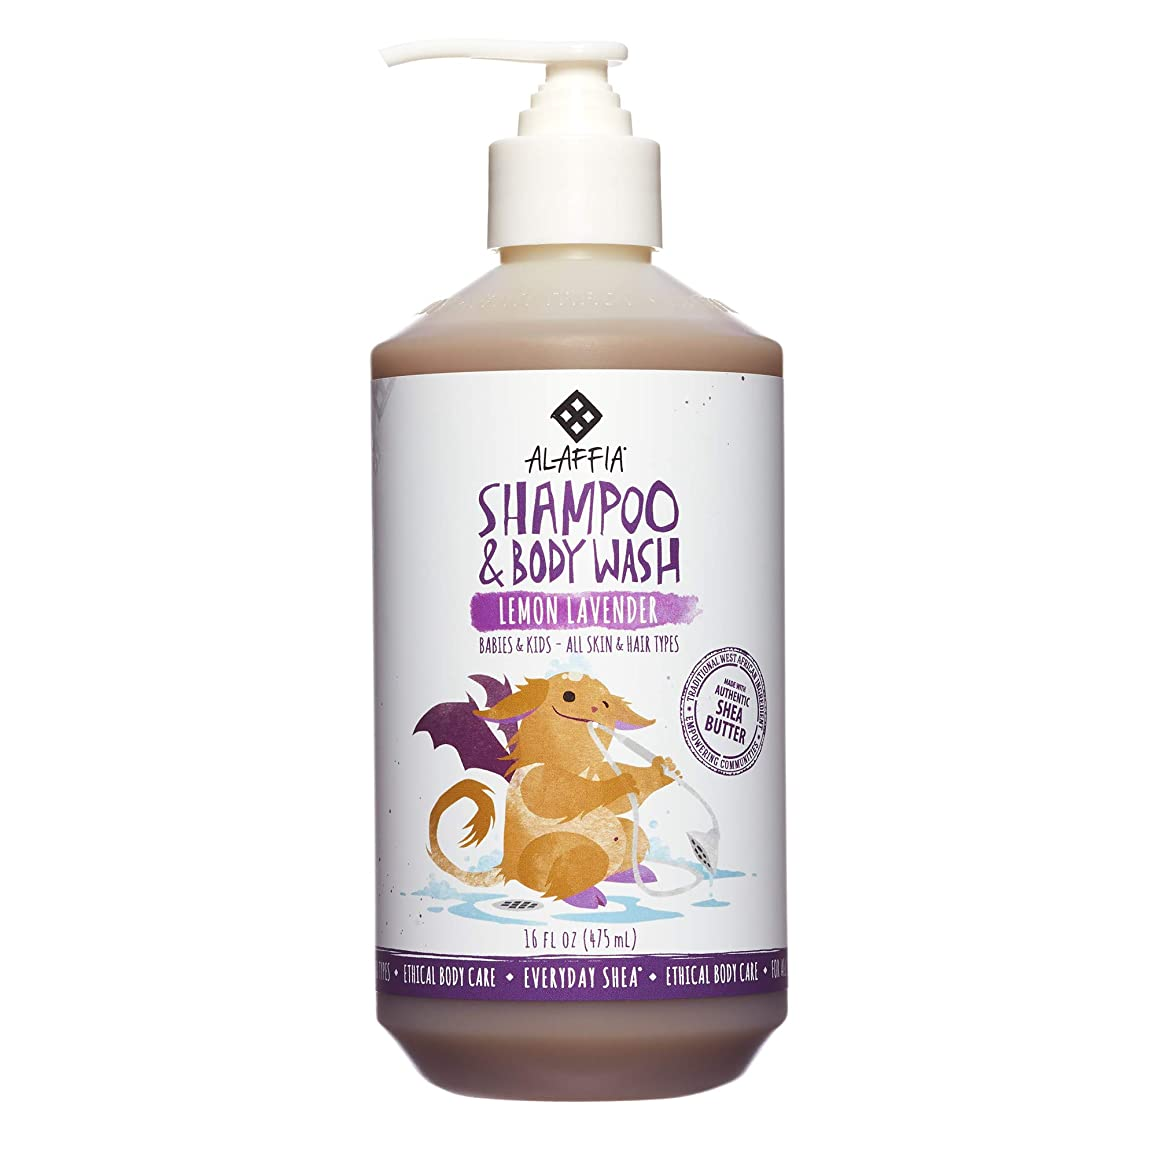 許可するペック外部Alaffia Everyday Shea Shampoo & Body Wash for Babies and Up Lemon Lavender 16 oz Size: 16 oz CustomerPackageType: Standard Packaging, Model: C580, Baby & Child Shop by Baby & Child Shop